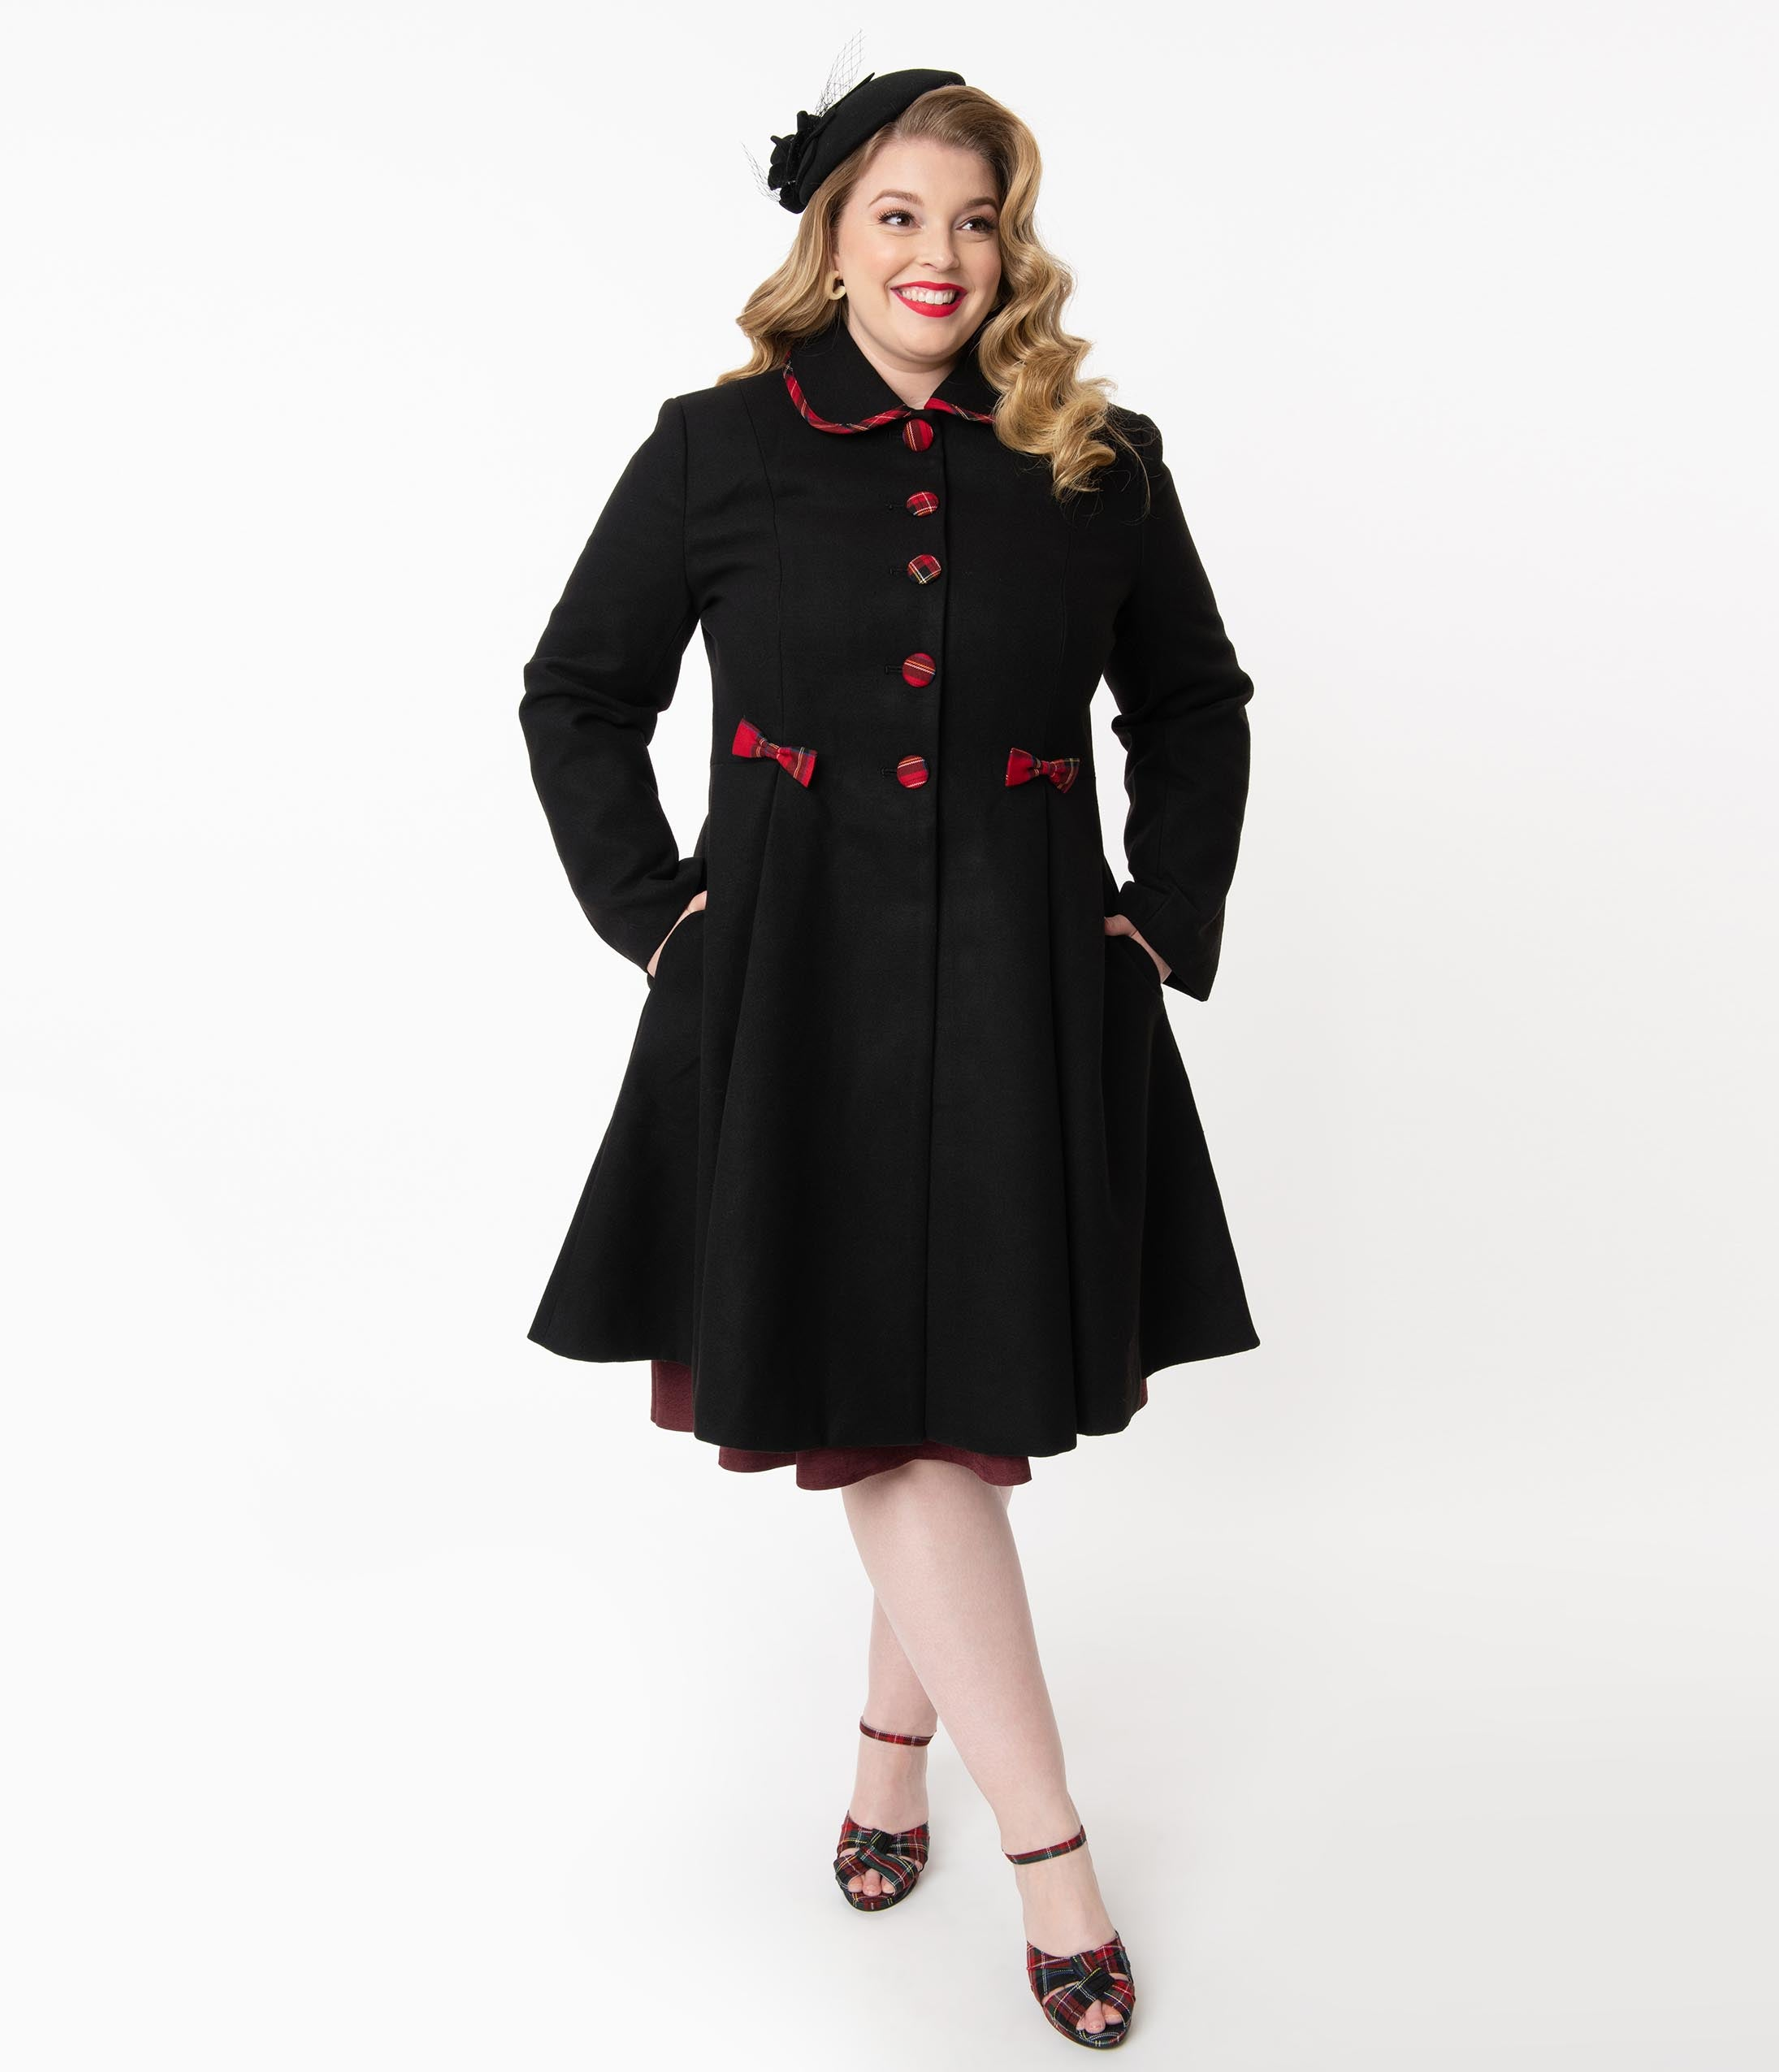 1950s Jackets, Coats, Bolero | Swing, Pin Up, Rockabilly Hell Bunny Plus Size 1950S Black Tiddlywinks Coat $198.00 AT vintagedancer.com